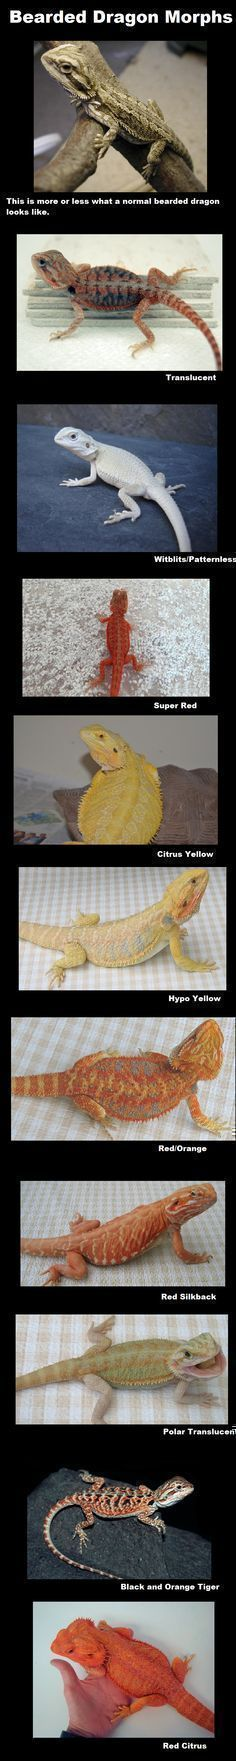 Bearded Dragon Morphs #funny #lol #humor #beardeddragonfunny